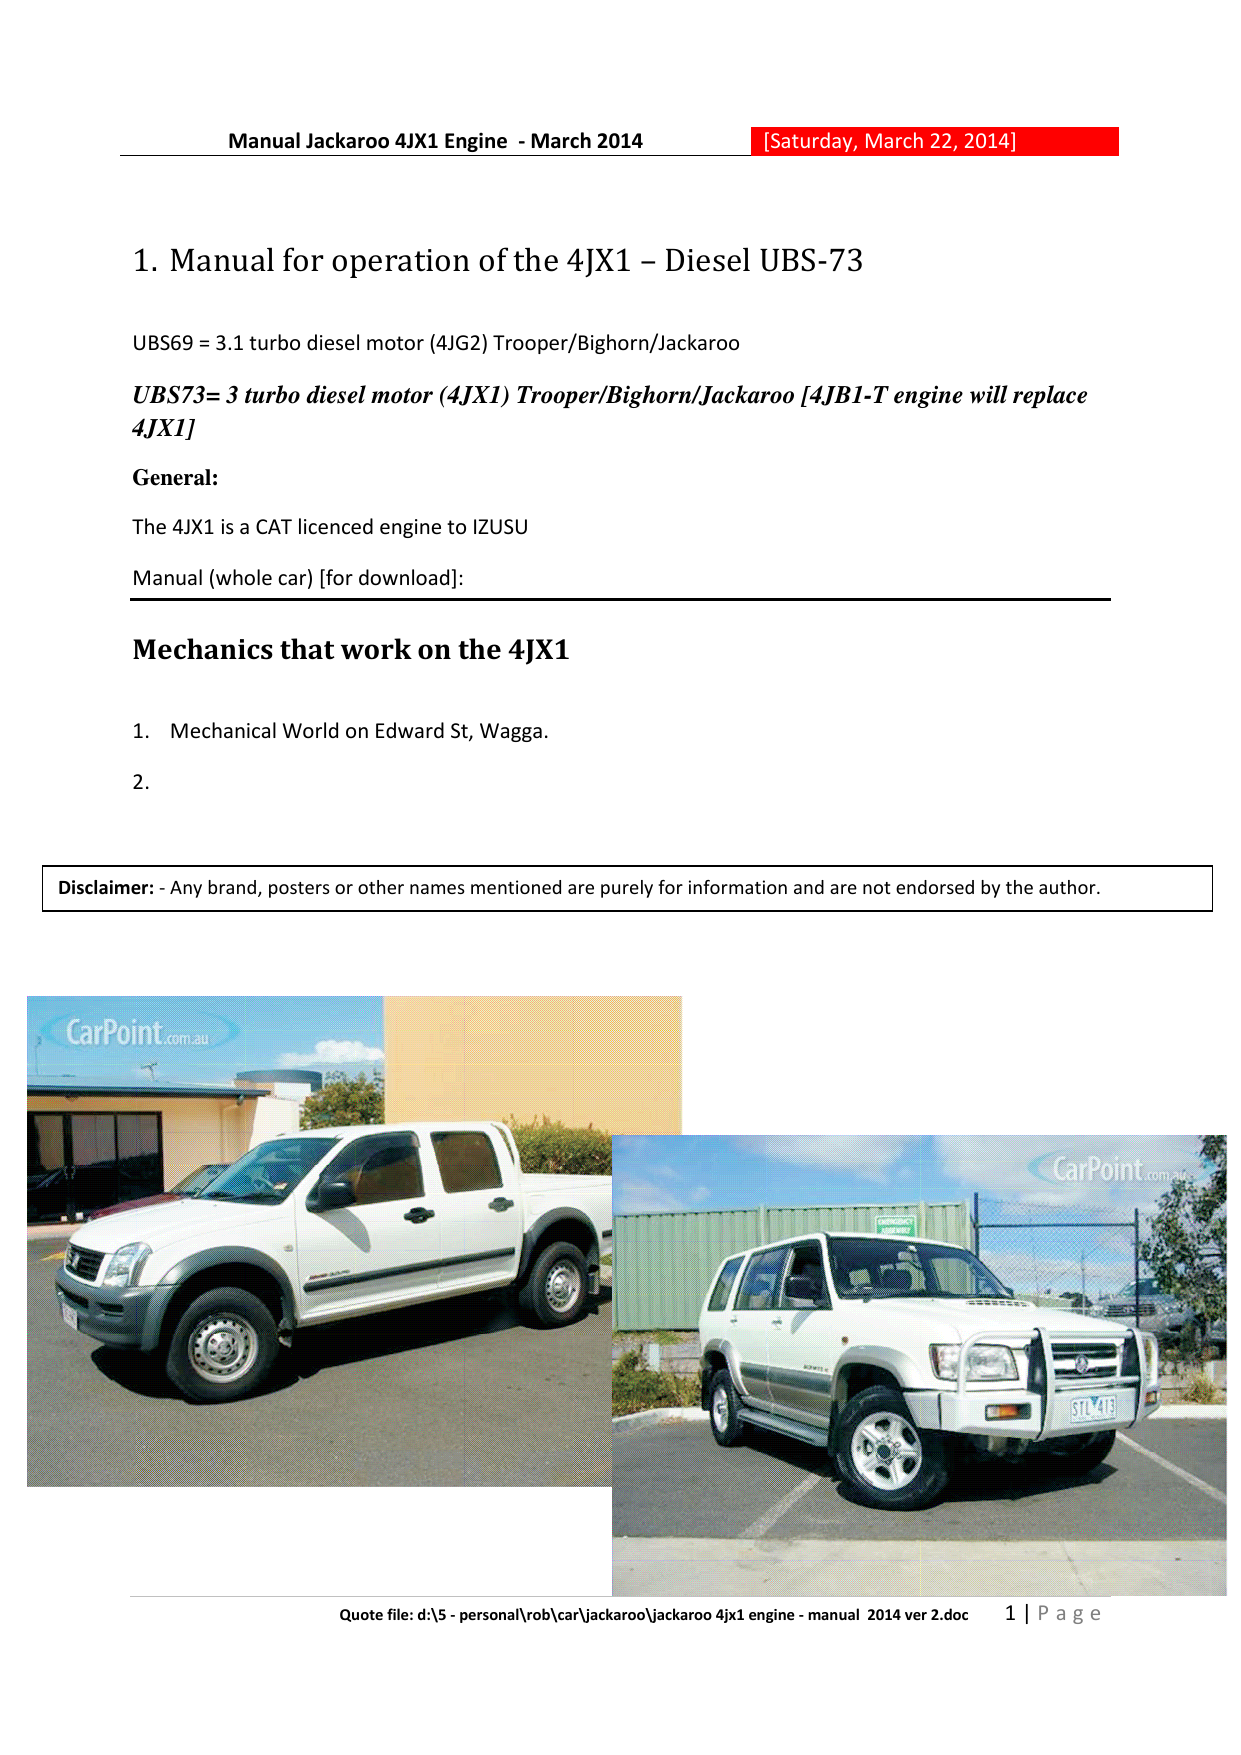 Manual for operation of the 4JX1 – Diesel UBS-73